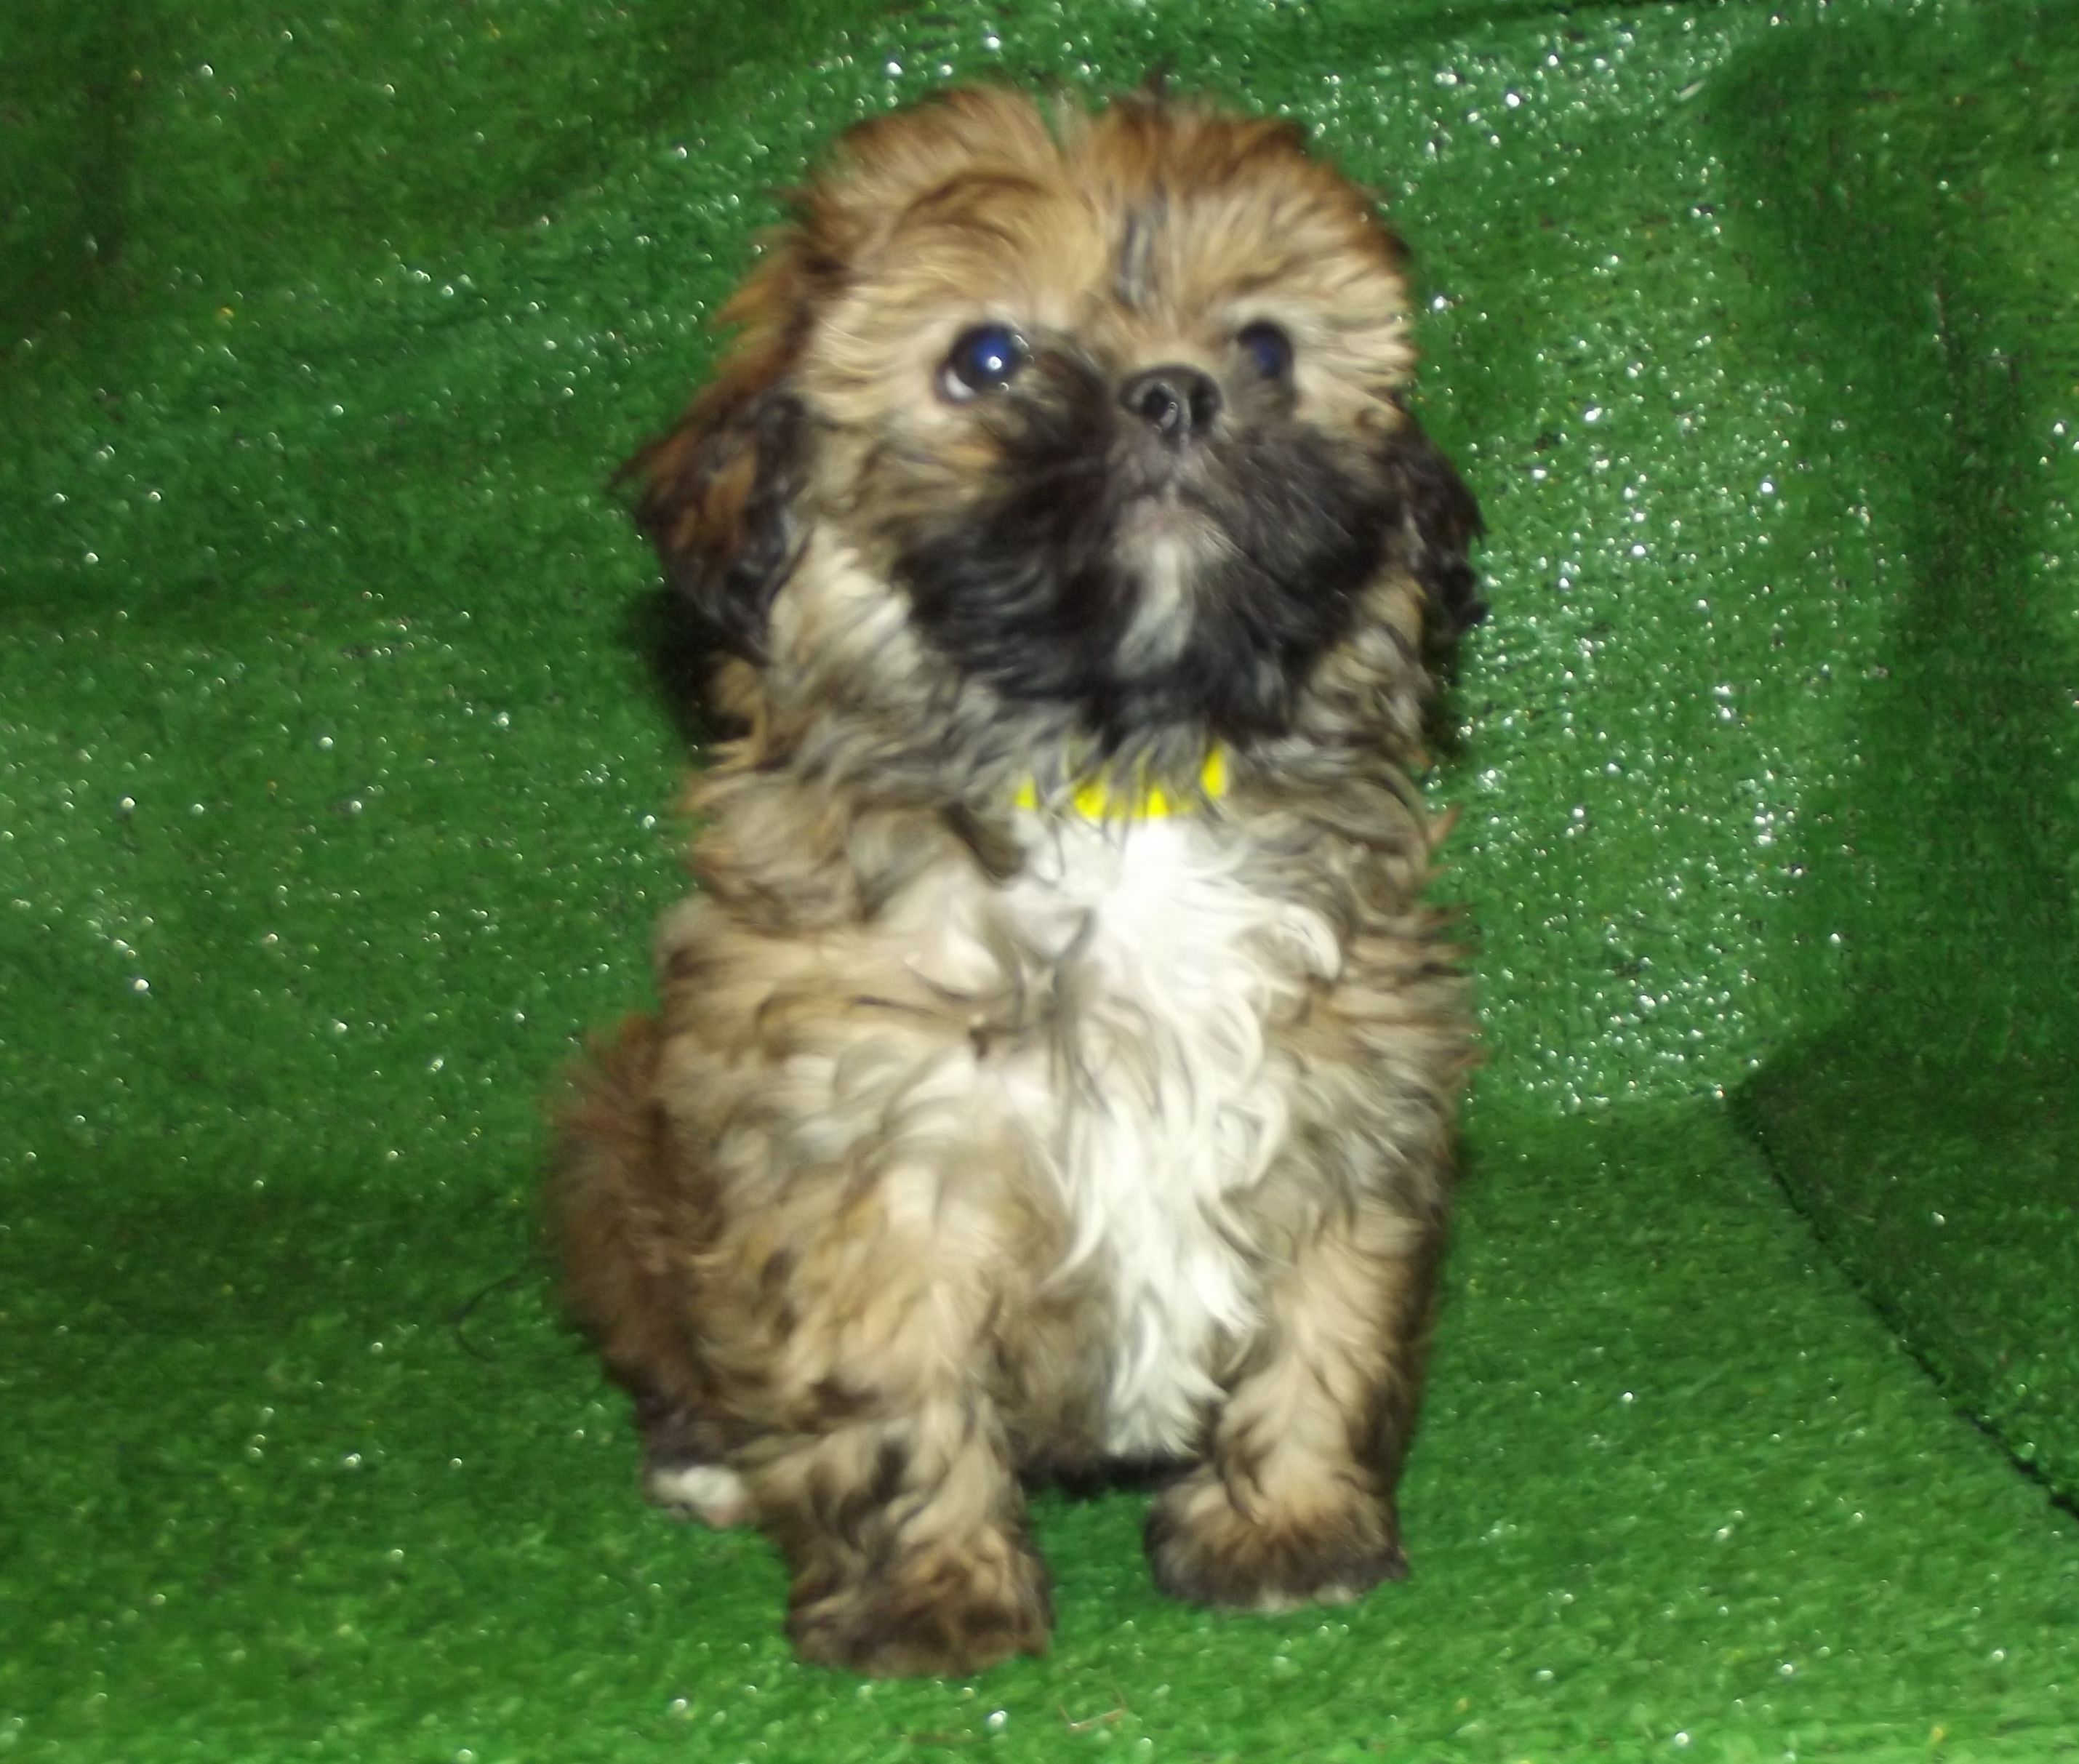 Shorkie (Shih Tzu X Yorkshire Terrier). Small nonshedding